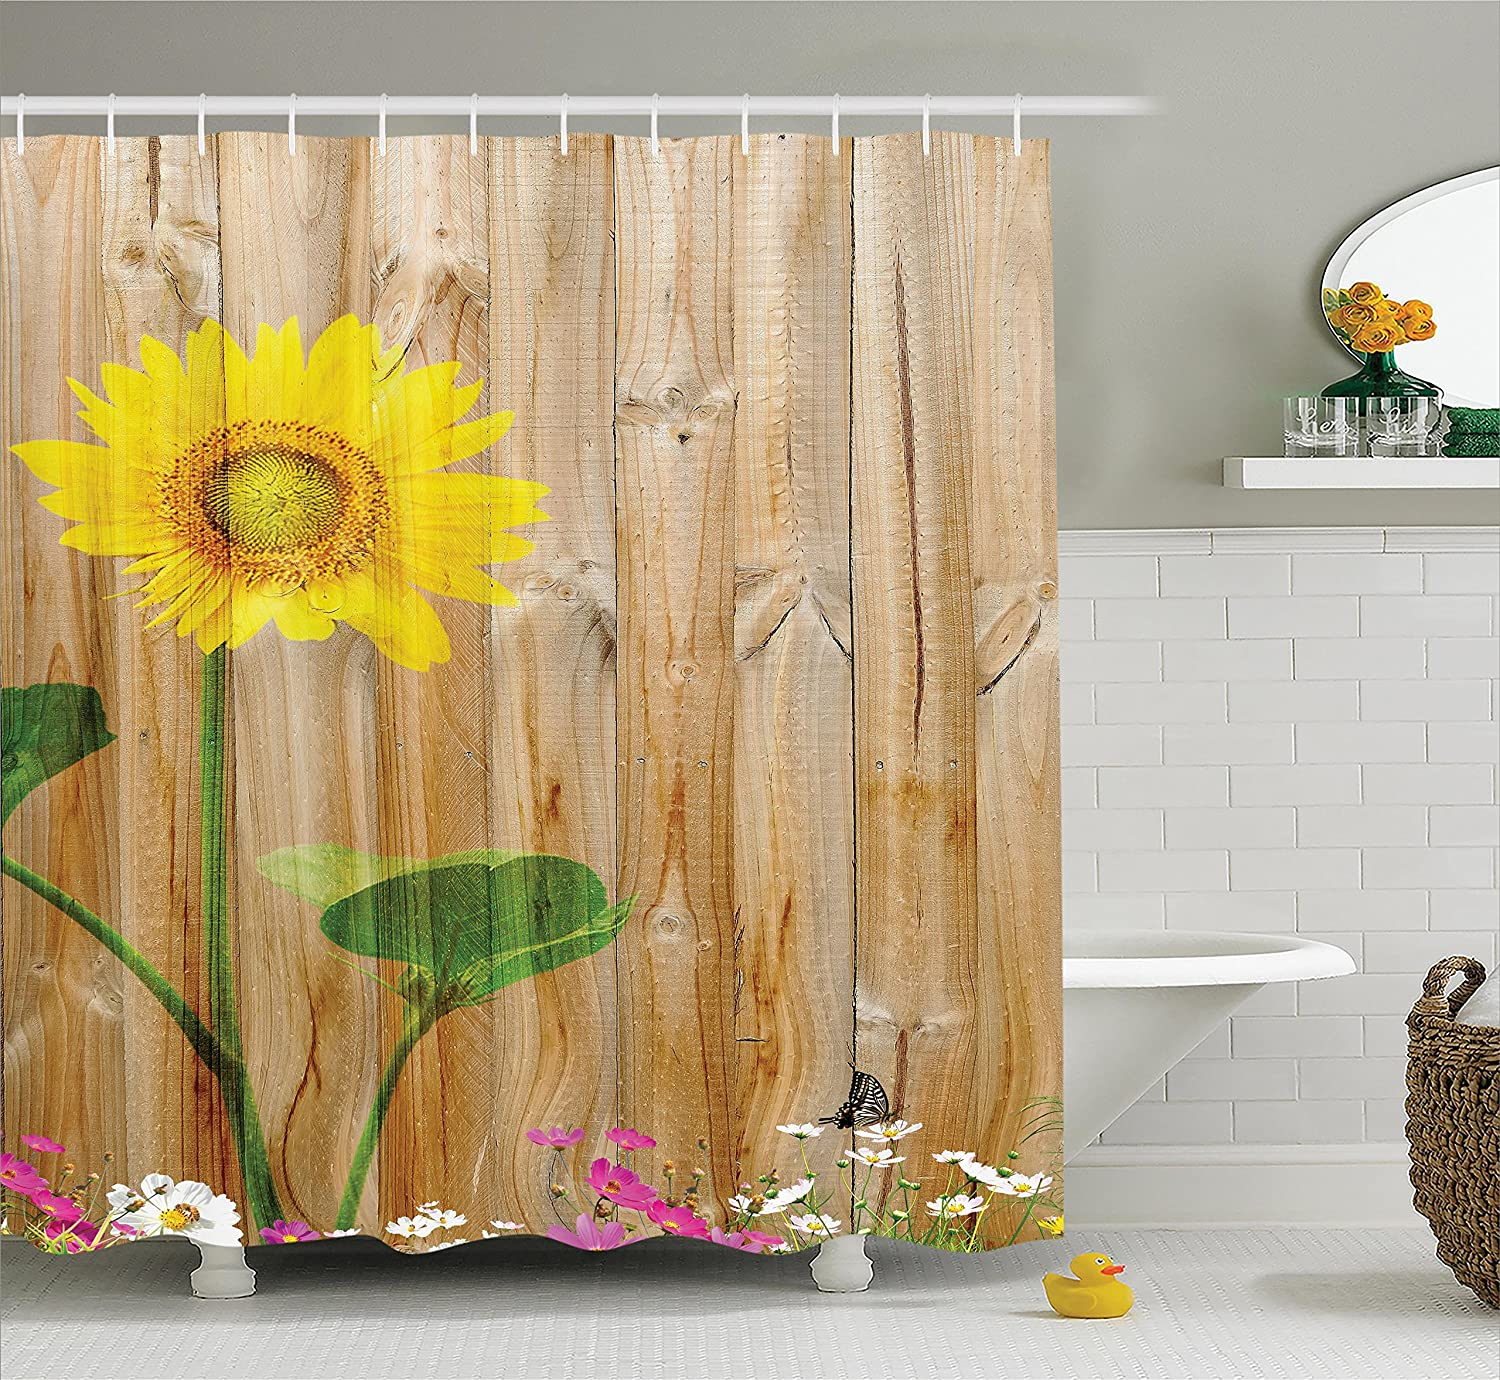 Sunflower Shower Curtain Set with Hooks by Ambesonne, Sunflower Painting on Wooden Background Vertical Timber Countryside Fence Picture Print, Yellow Green and Light Brown